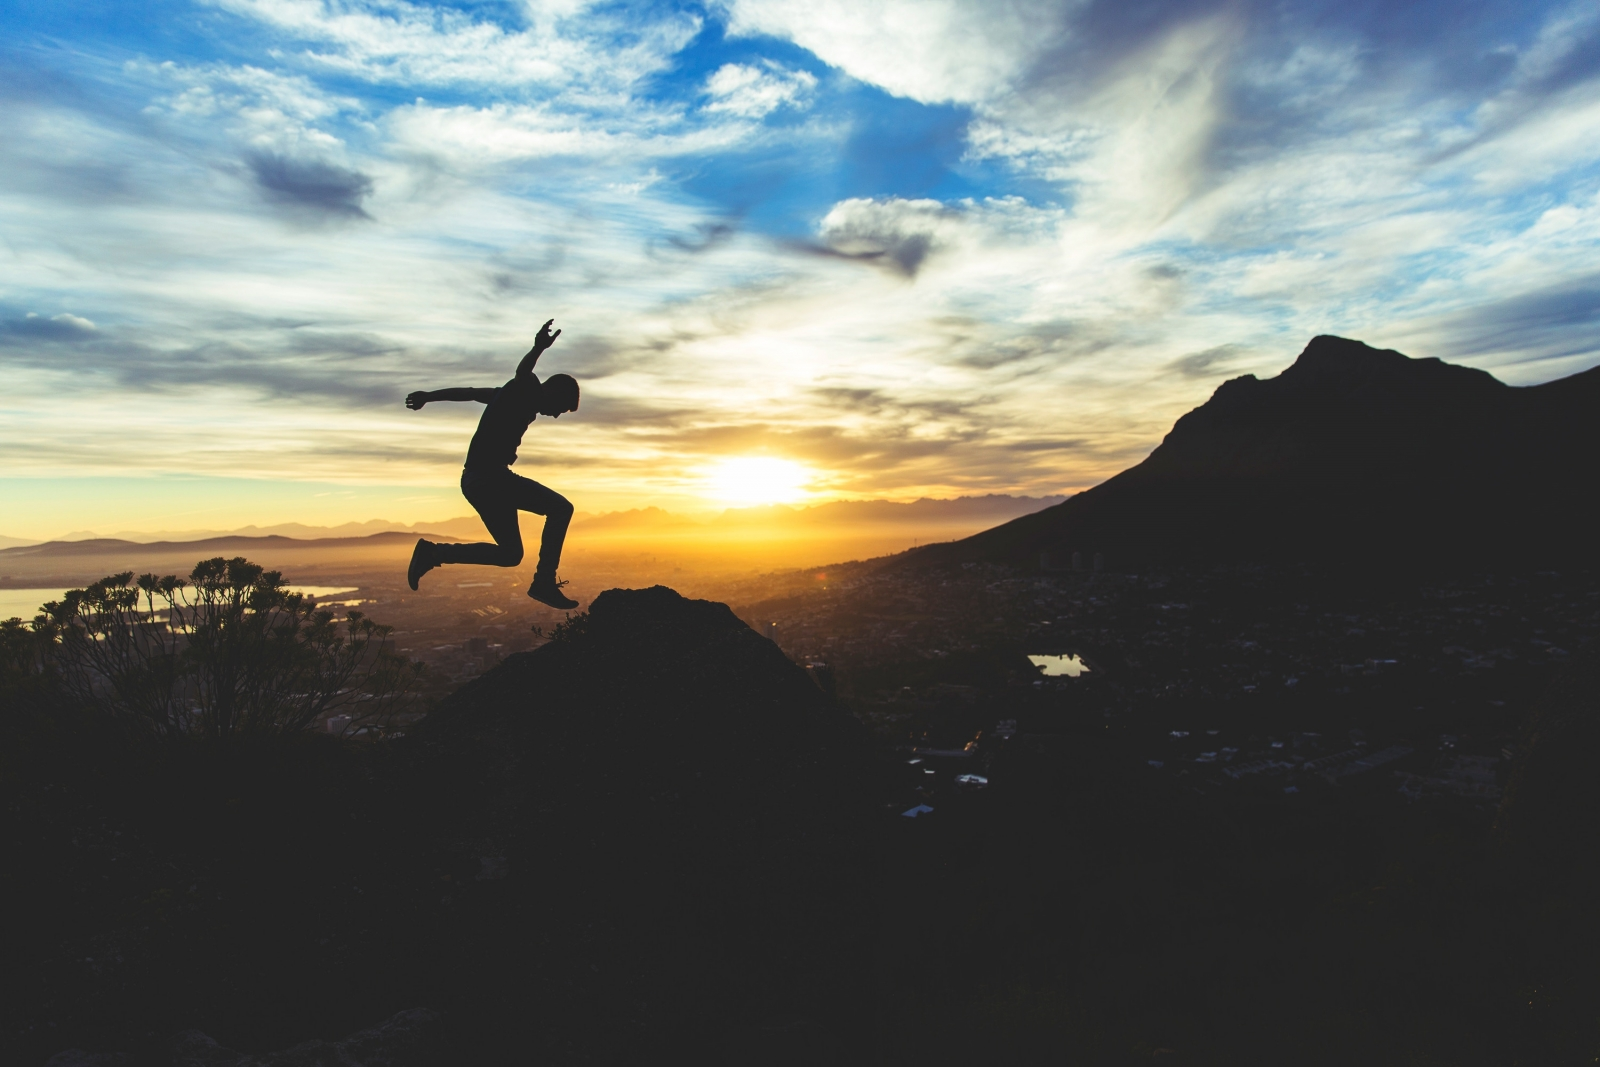 Man jumps during in front of landscape